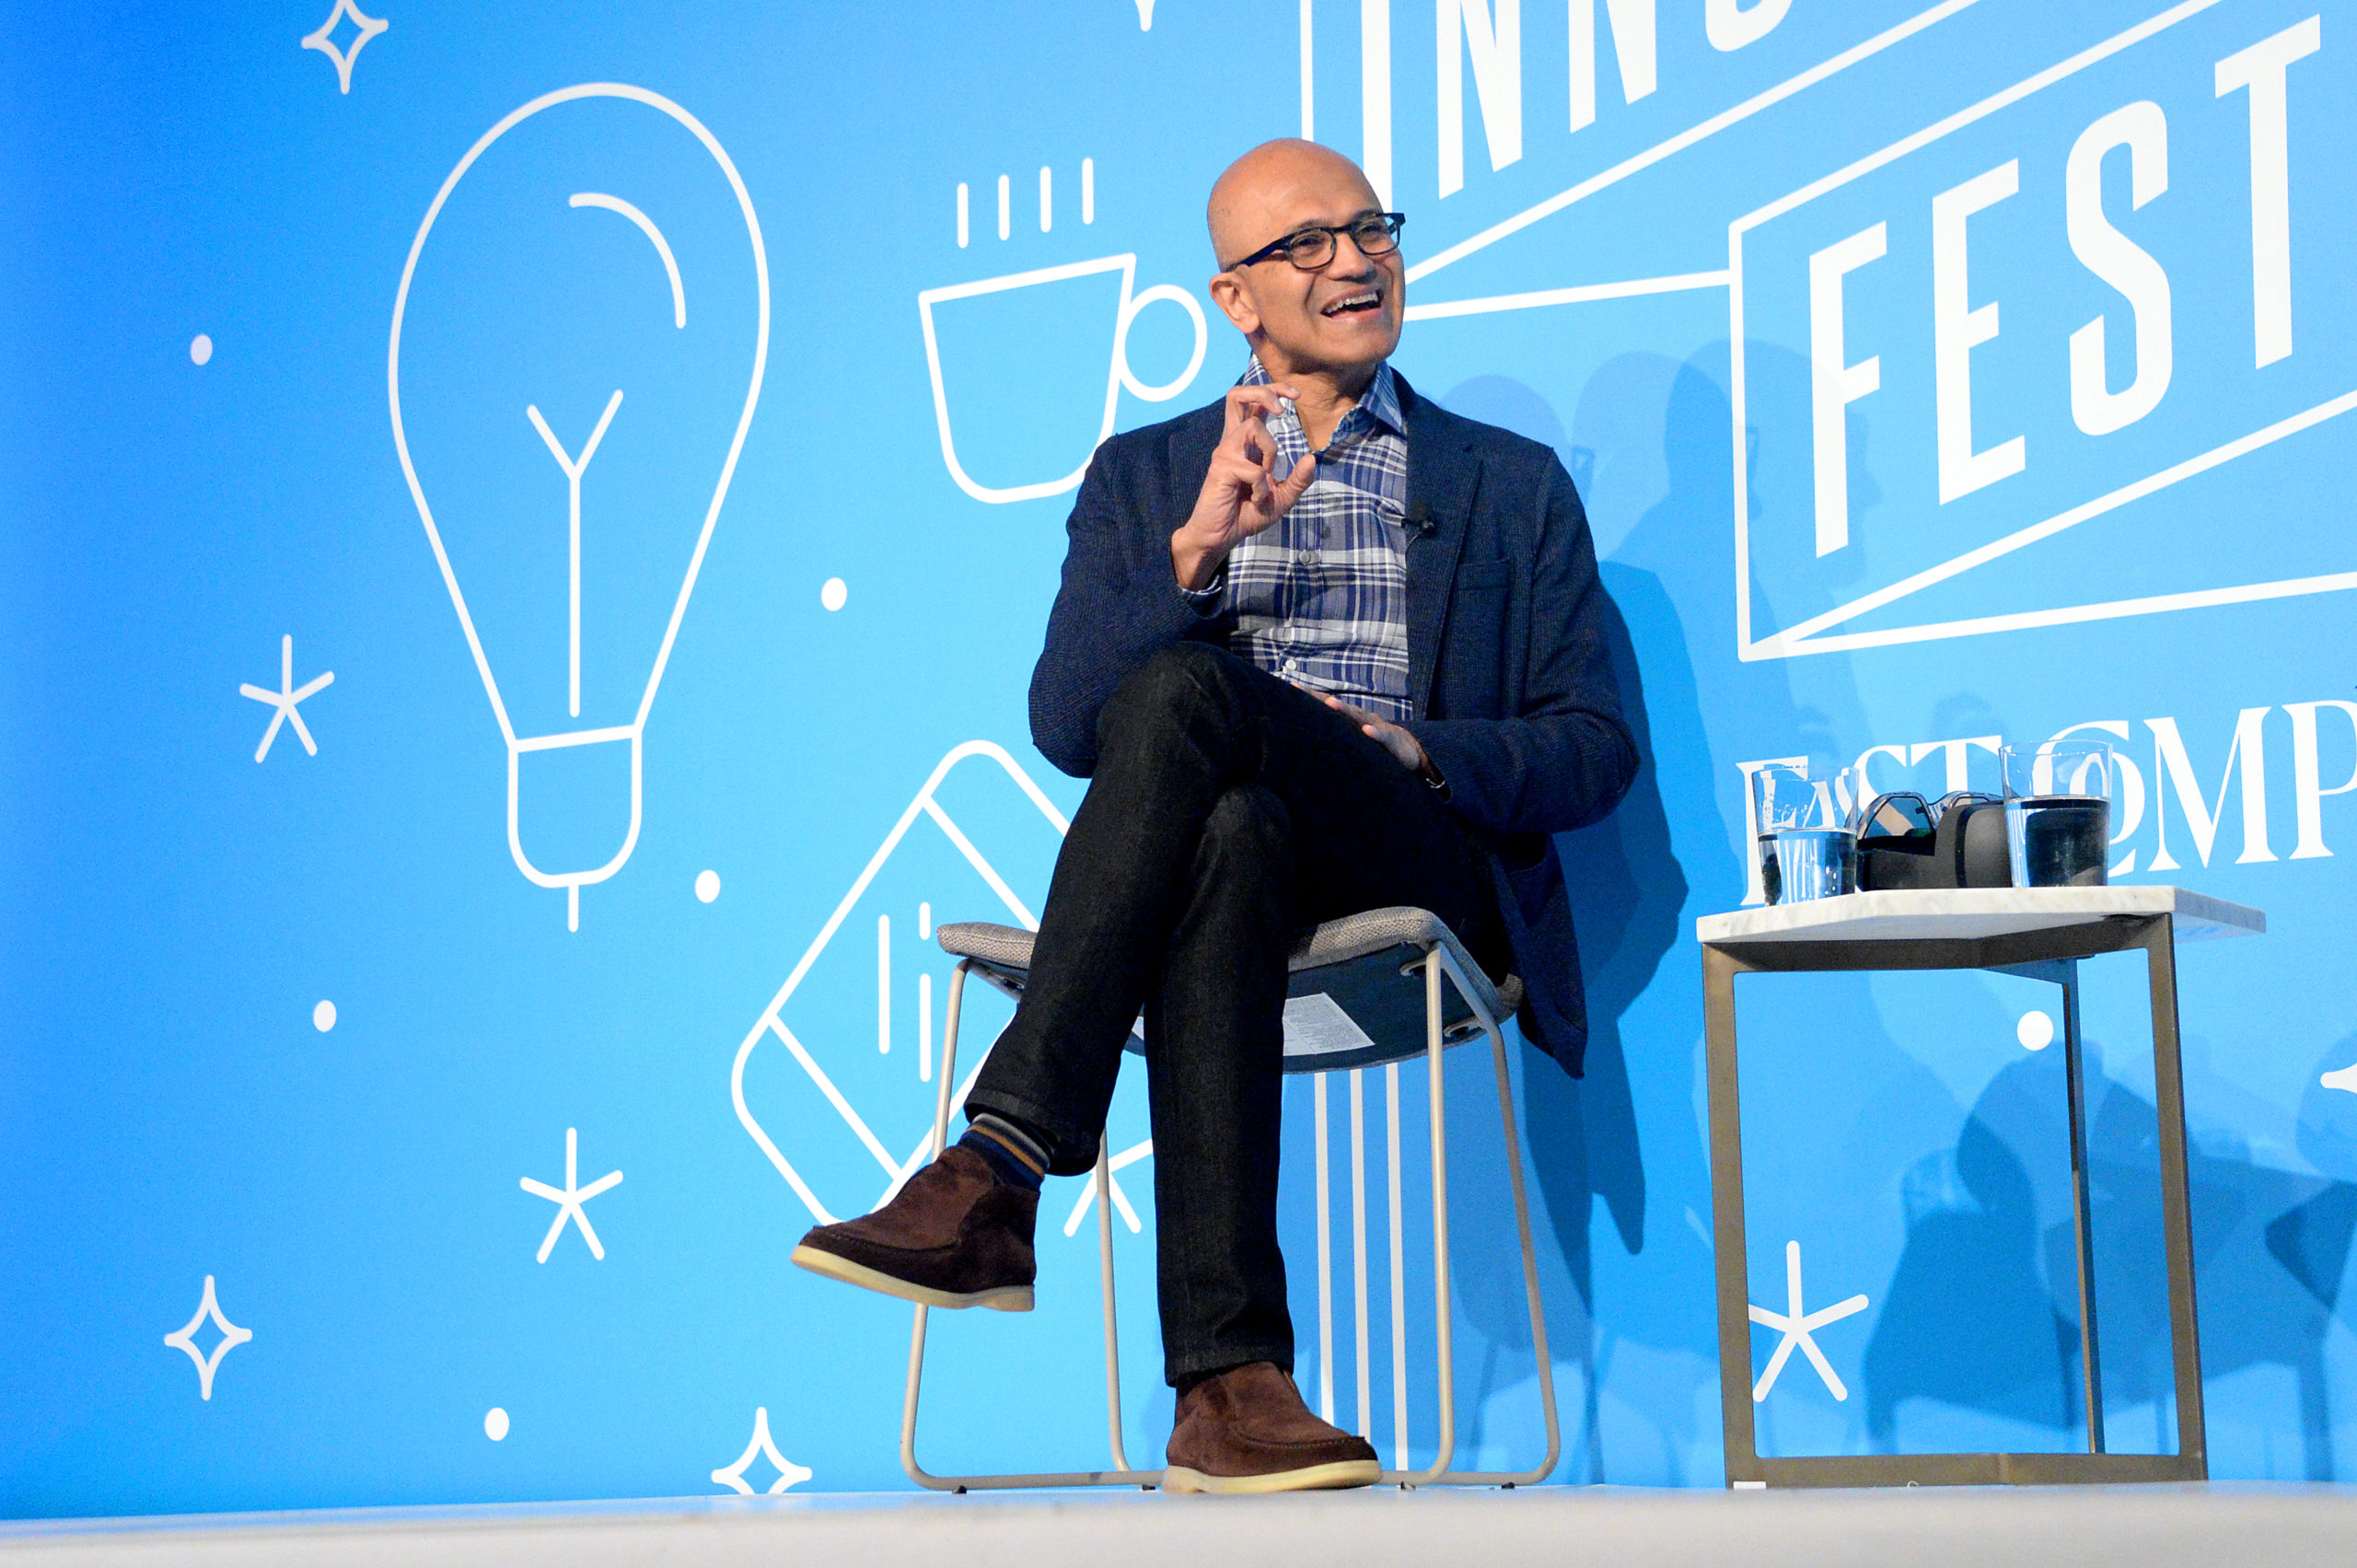 Microsoft CEO Satya Nadela speaks on stage on Nov. 7, 2019 in New York City. (Brad Barket/Getty Images for Fast Company)